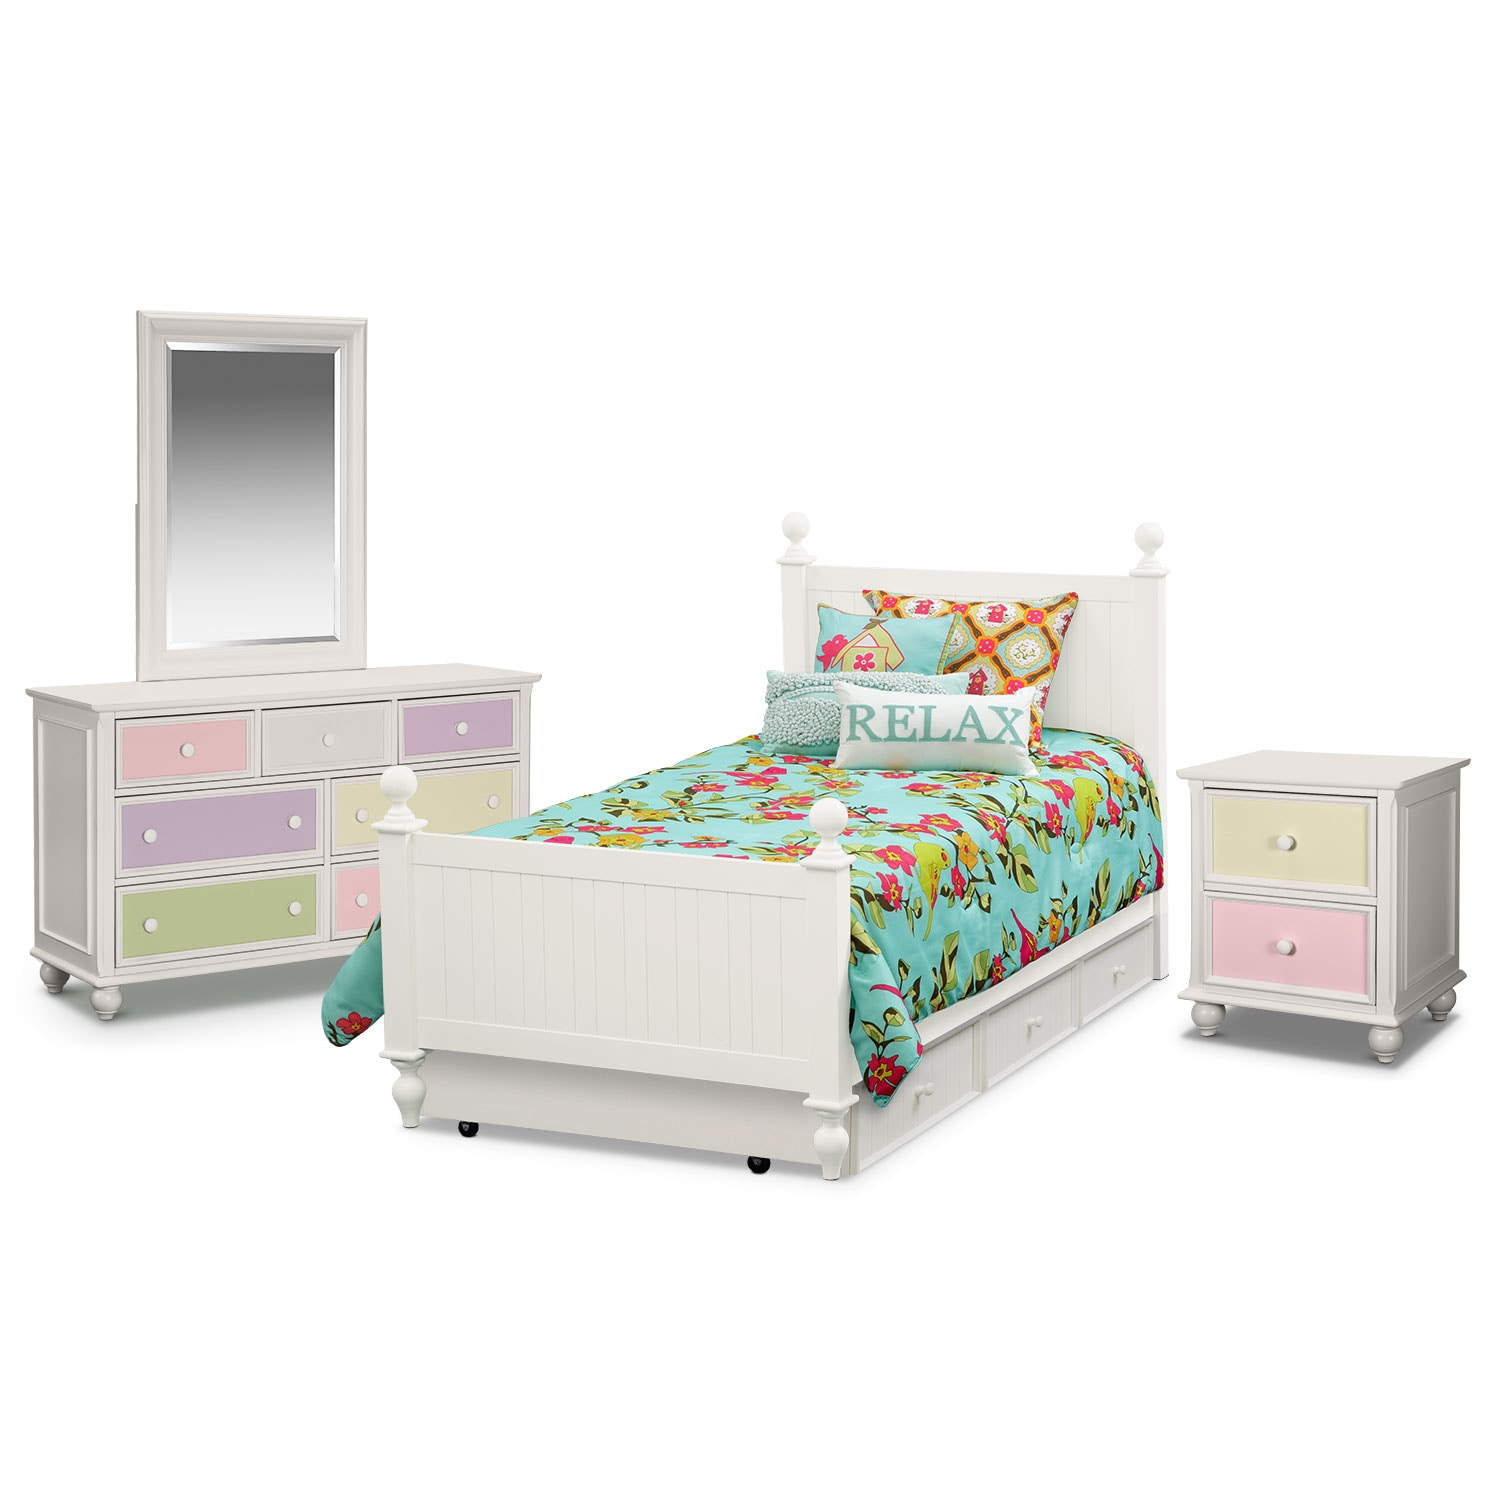 Colorworks 7 piece twin bedroom set with trundle white value city furniture White twin trundle bedroom set